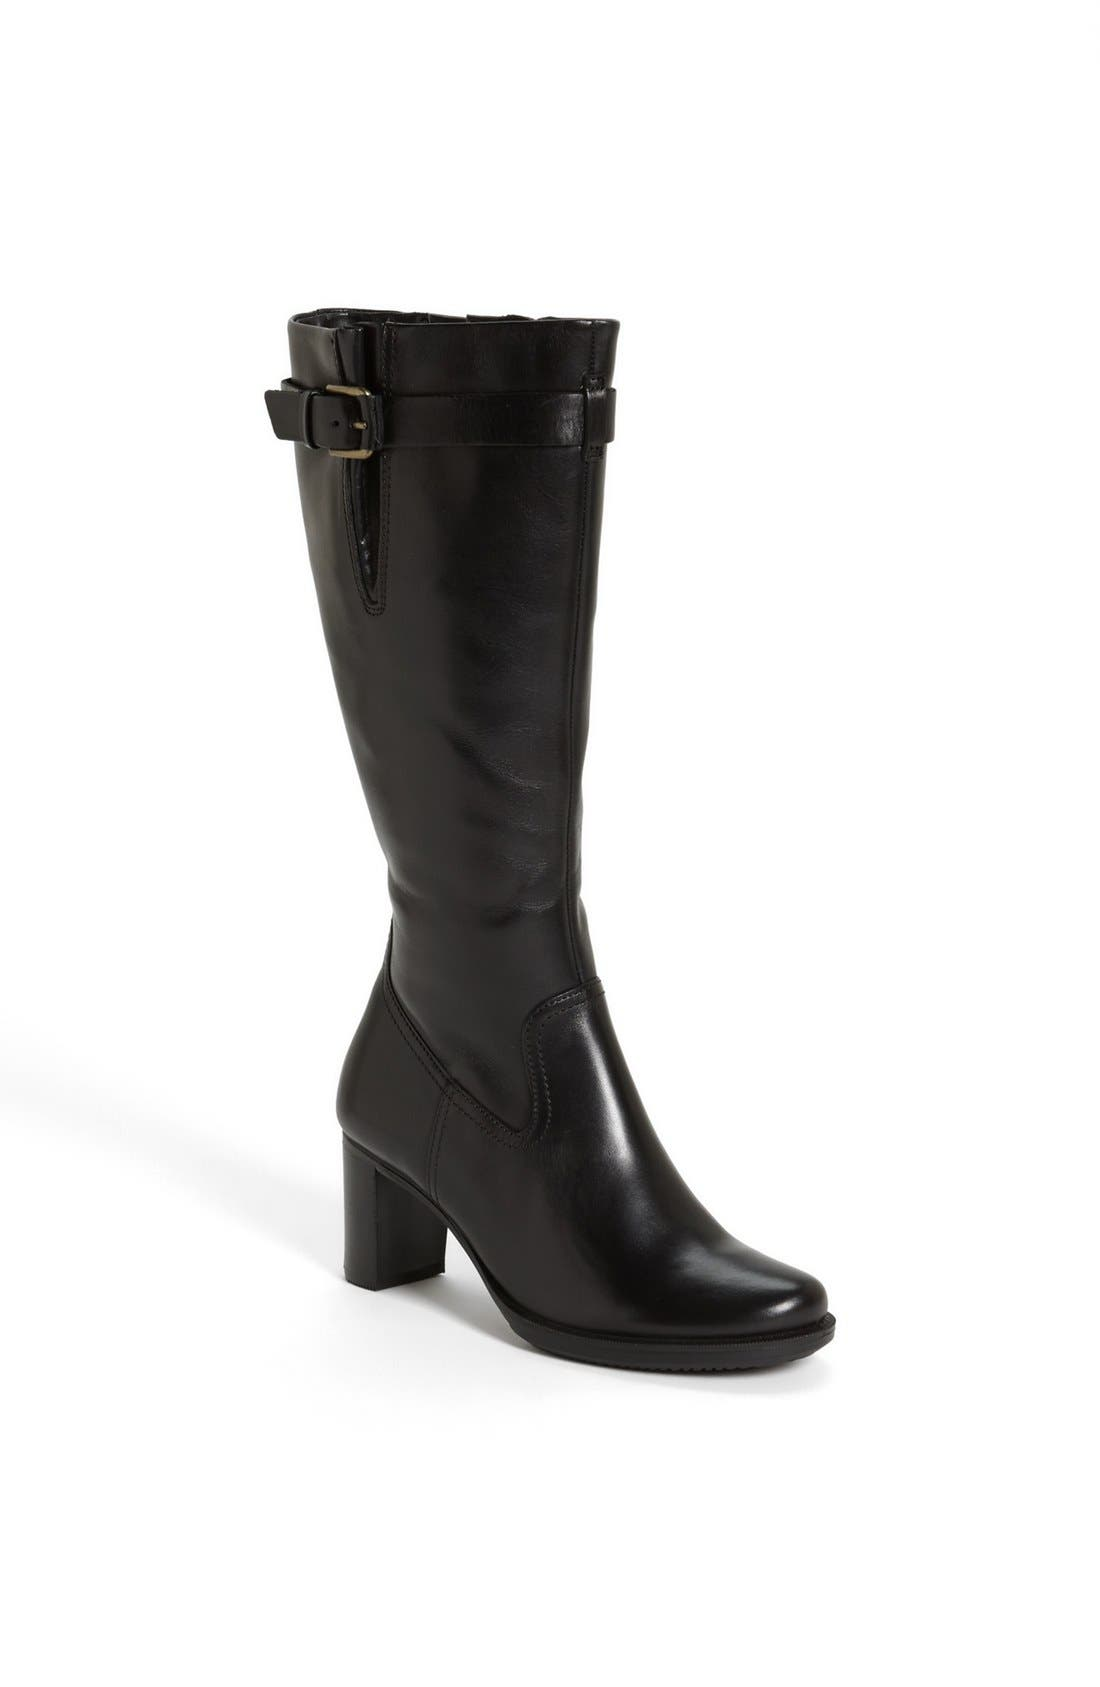 Alternate Image 1 Selected - ECCO 'Saunter' Tall Boot